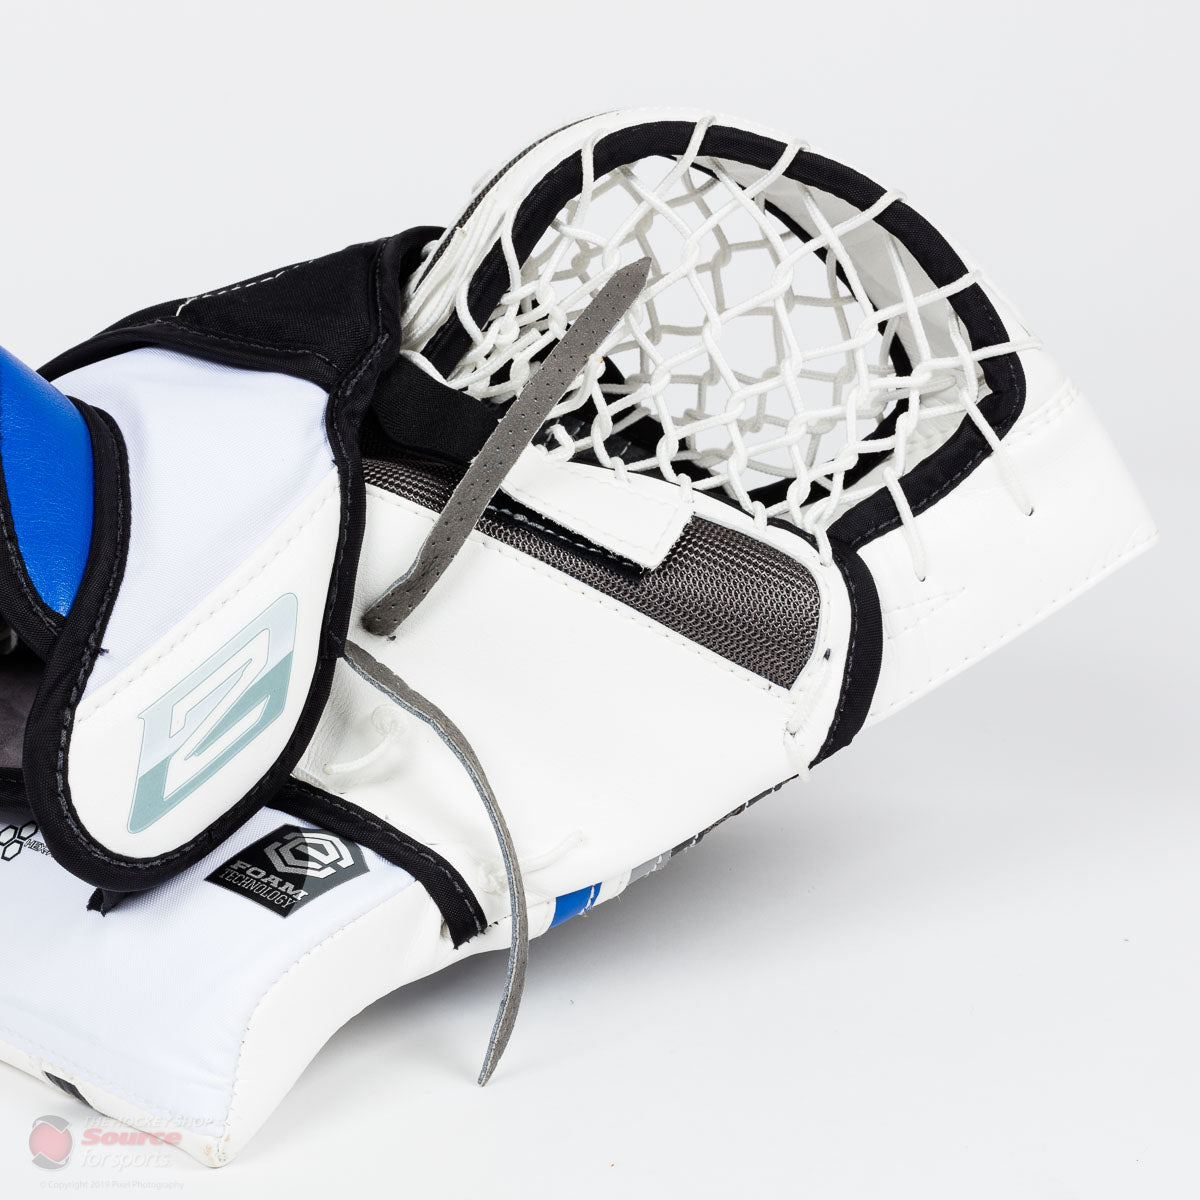 Brian's Optik 2 Trapper and blocker'